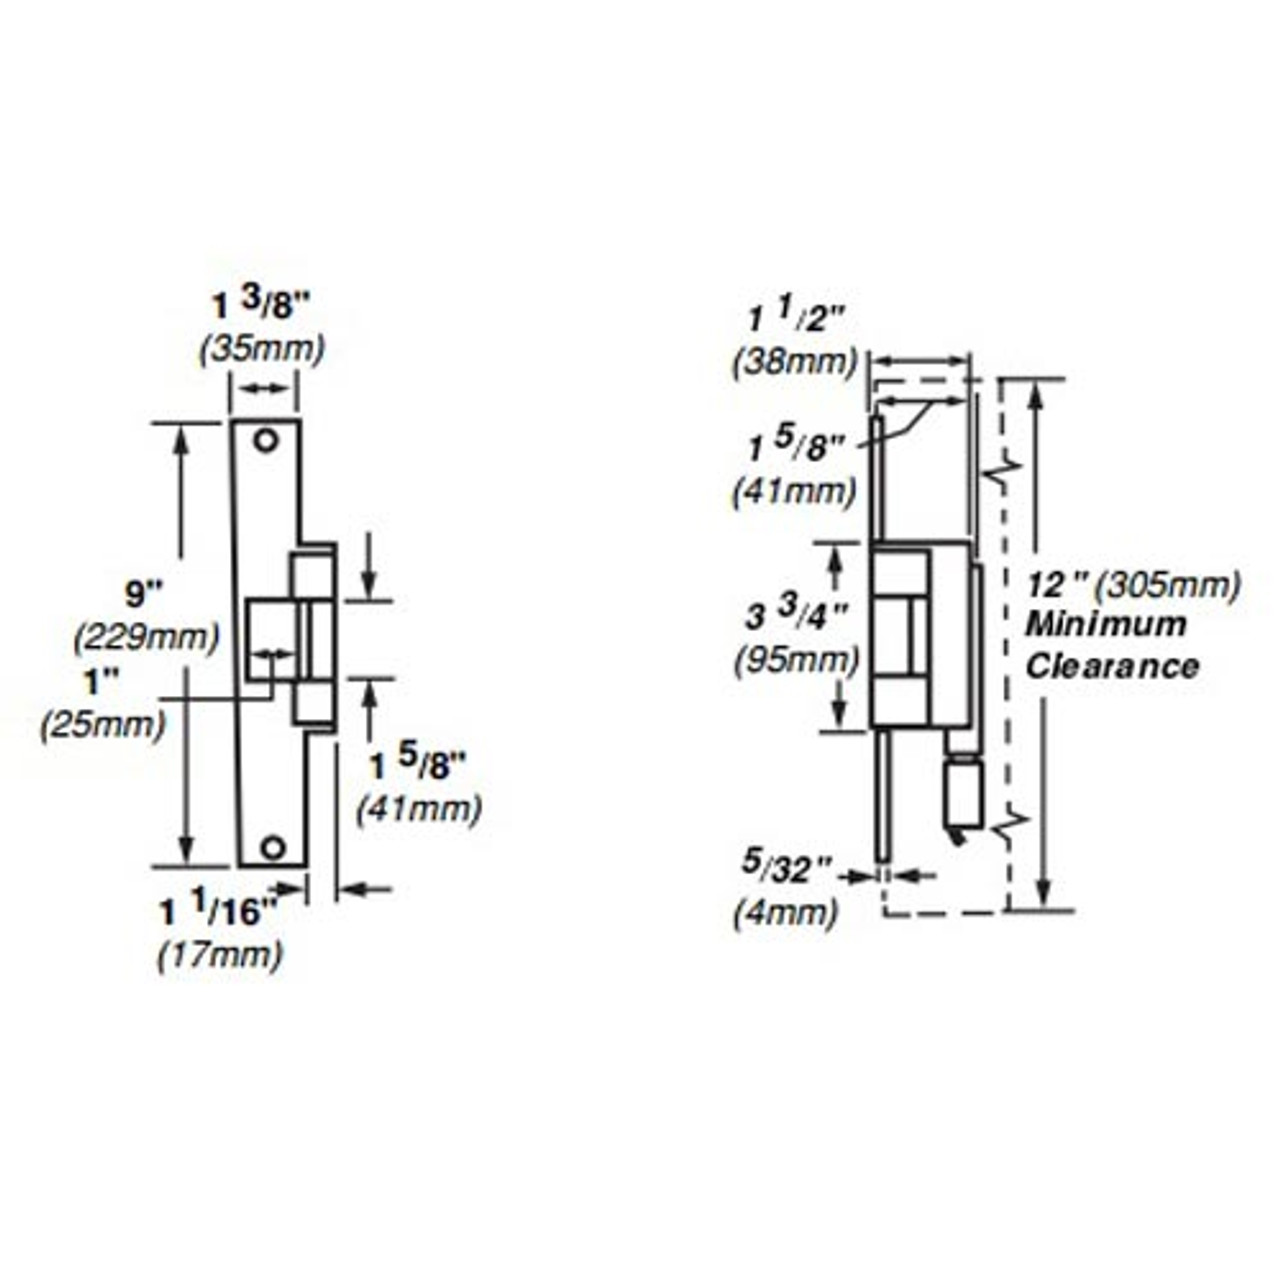 6215-DS-LC-24VDC-US10B Von Duprin Electric Strike for Mortise or Cylindrical Locksets in Dark Bronze Finish